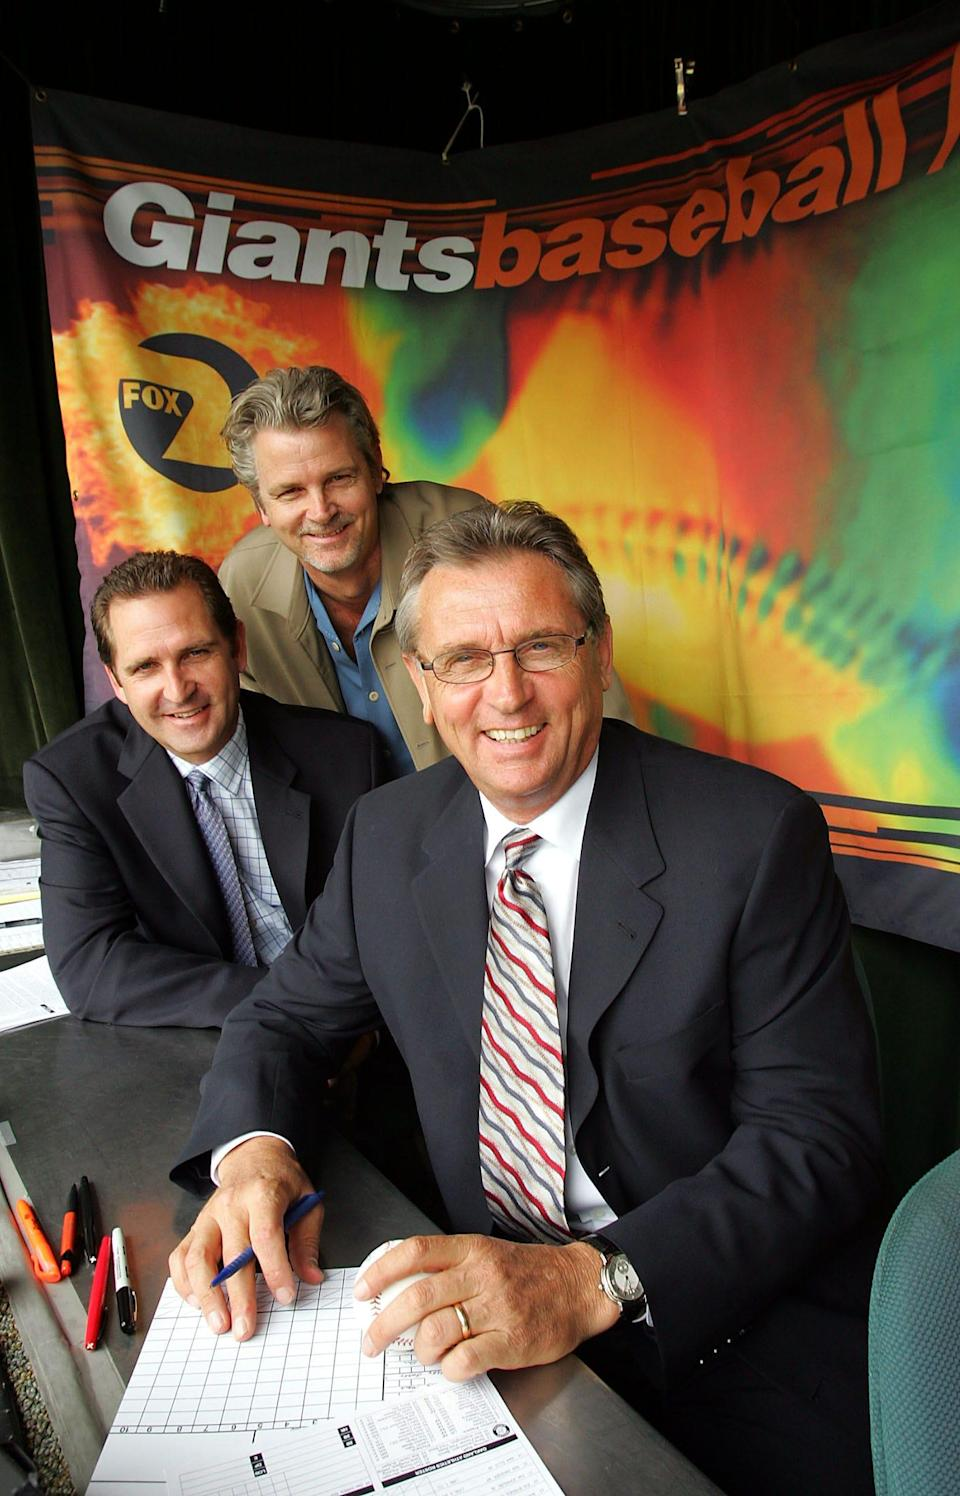 Duane Kuiper has been a longtime broadcaster for the Giants.